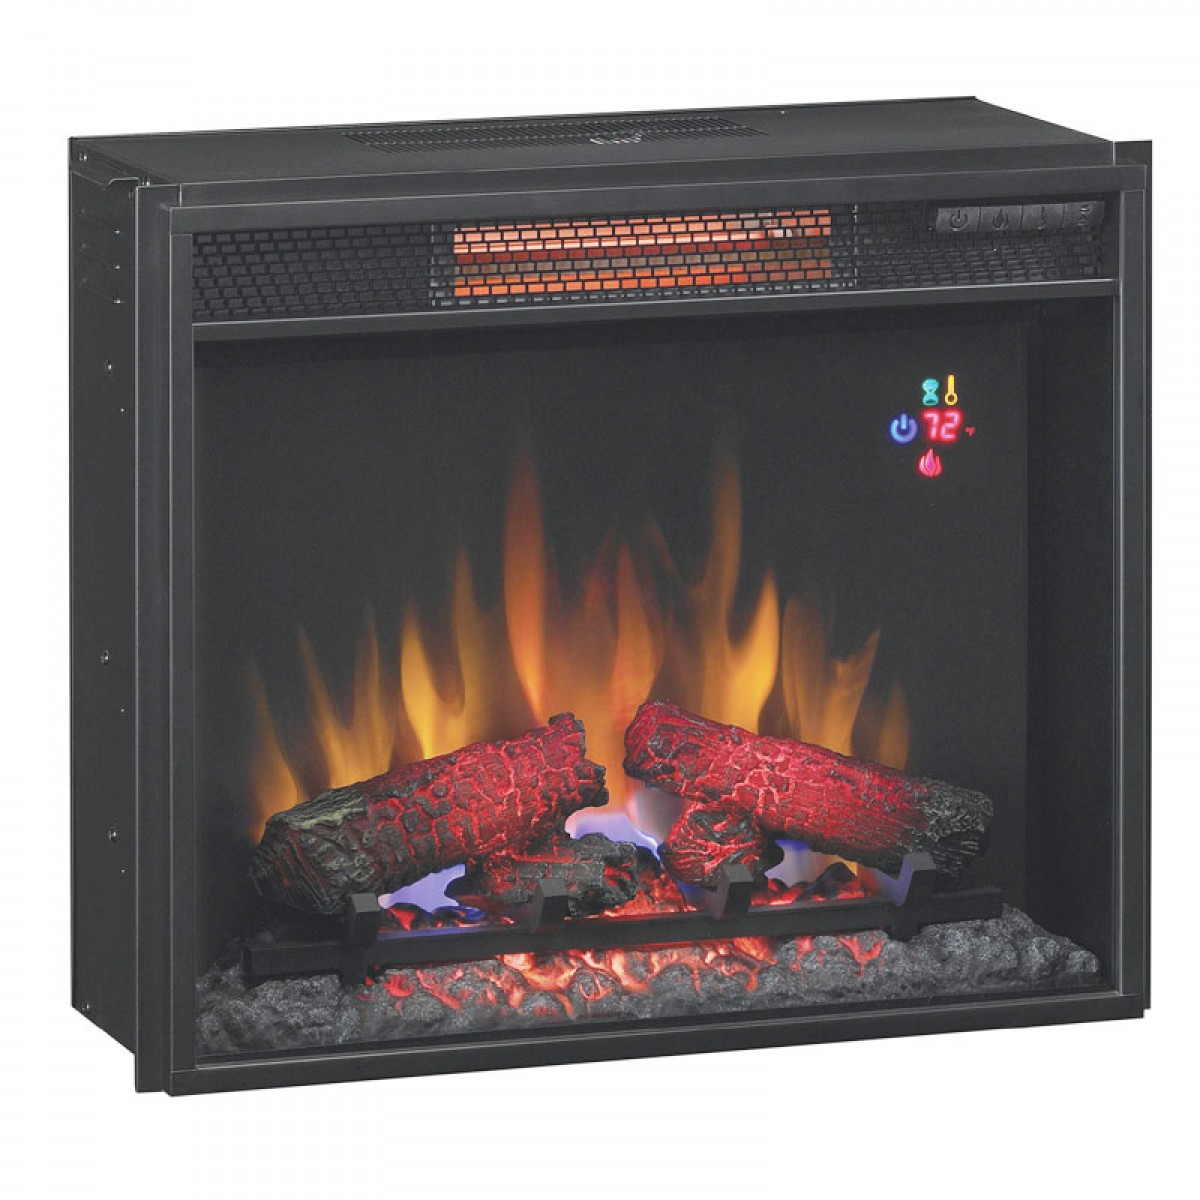 Classic Flame 23ii310gra 23 Spectrafi Plus Infrared Electric Fireplace Insert With Safer Plug